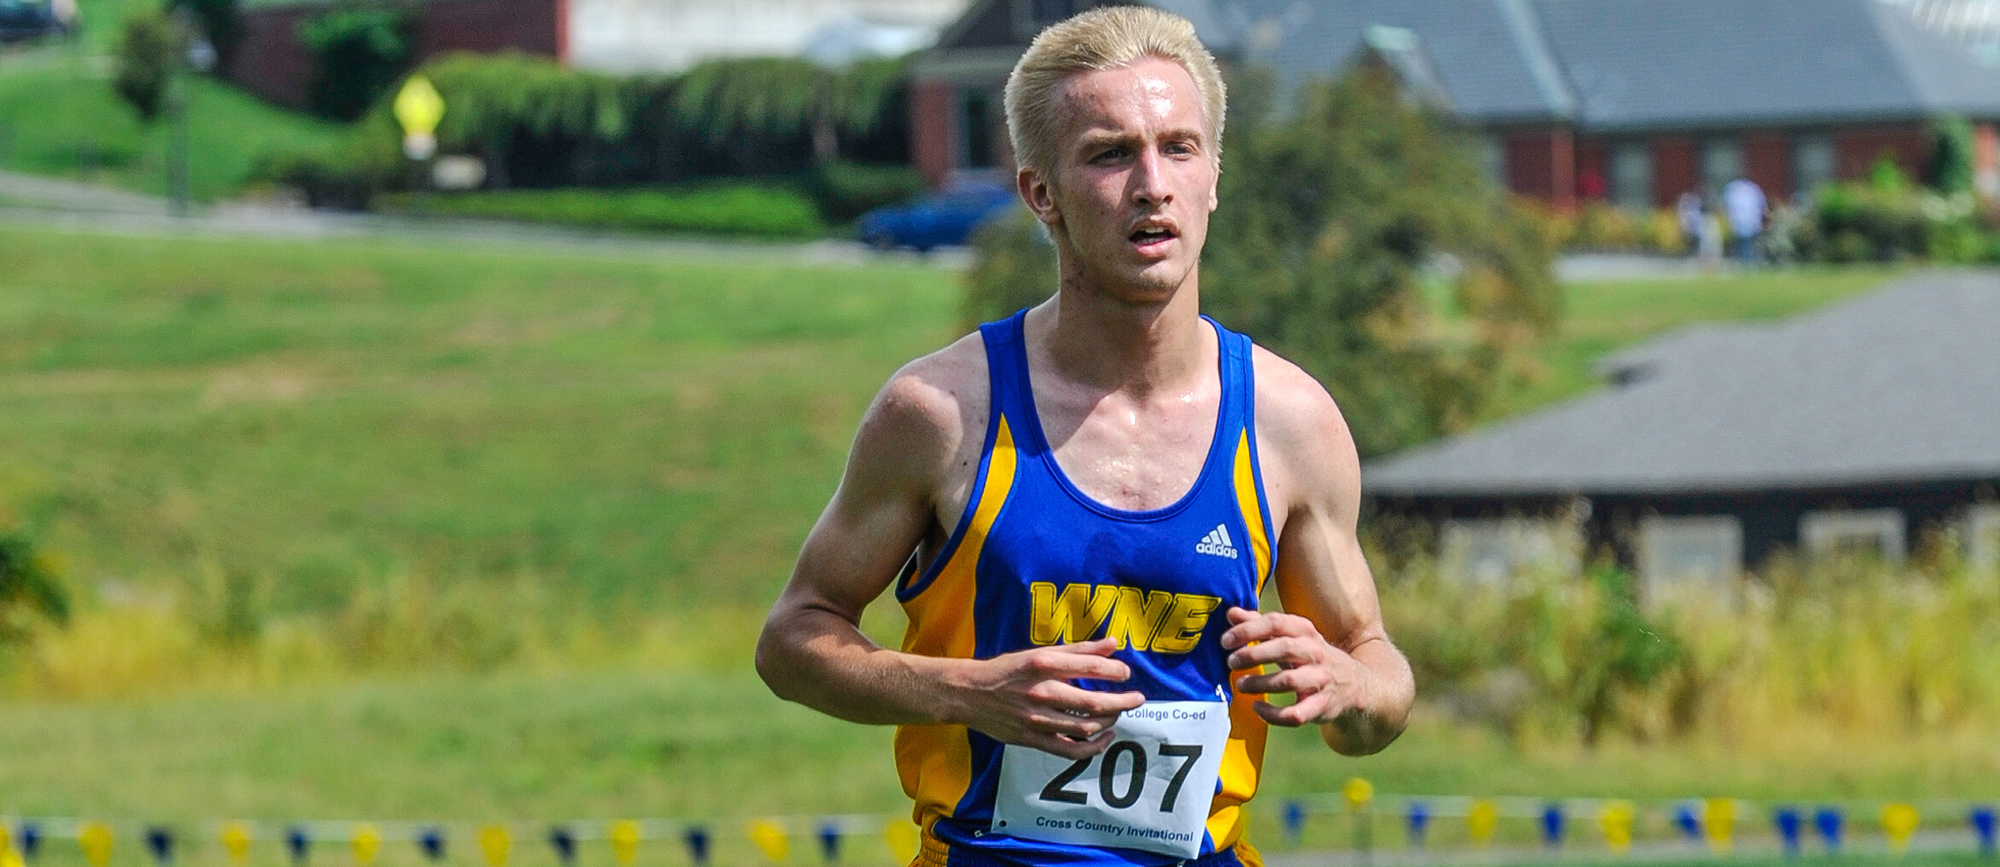 Western New England Finishes 34th at UMass Dartmouth Invitational